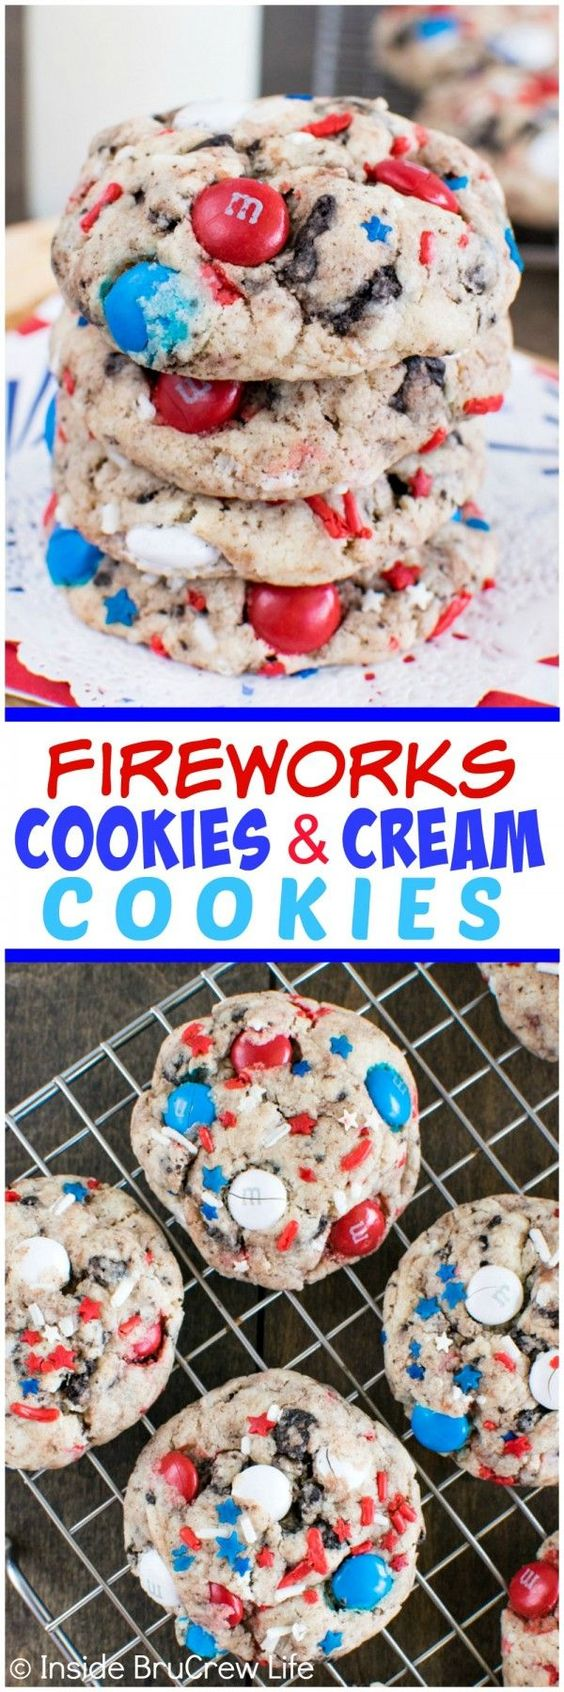 Fireworks Cookies and Cream Cookies - red, white, & blue candies and ...